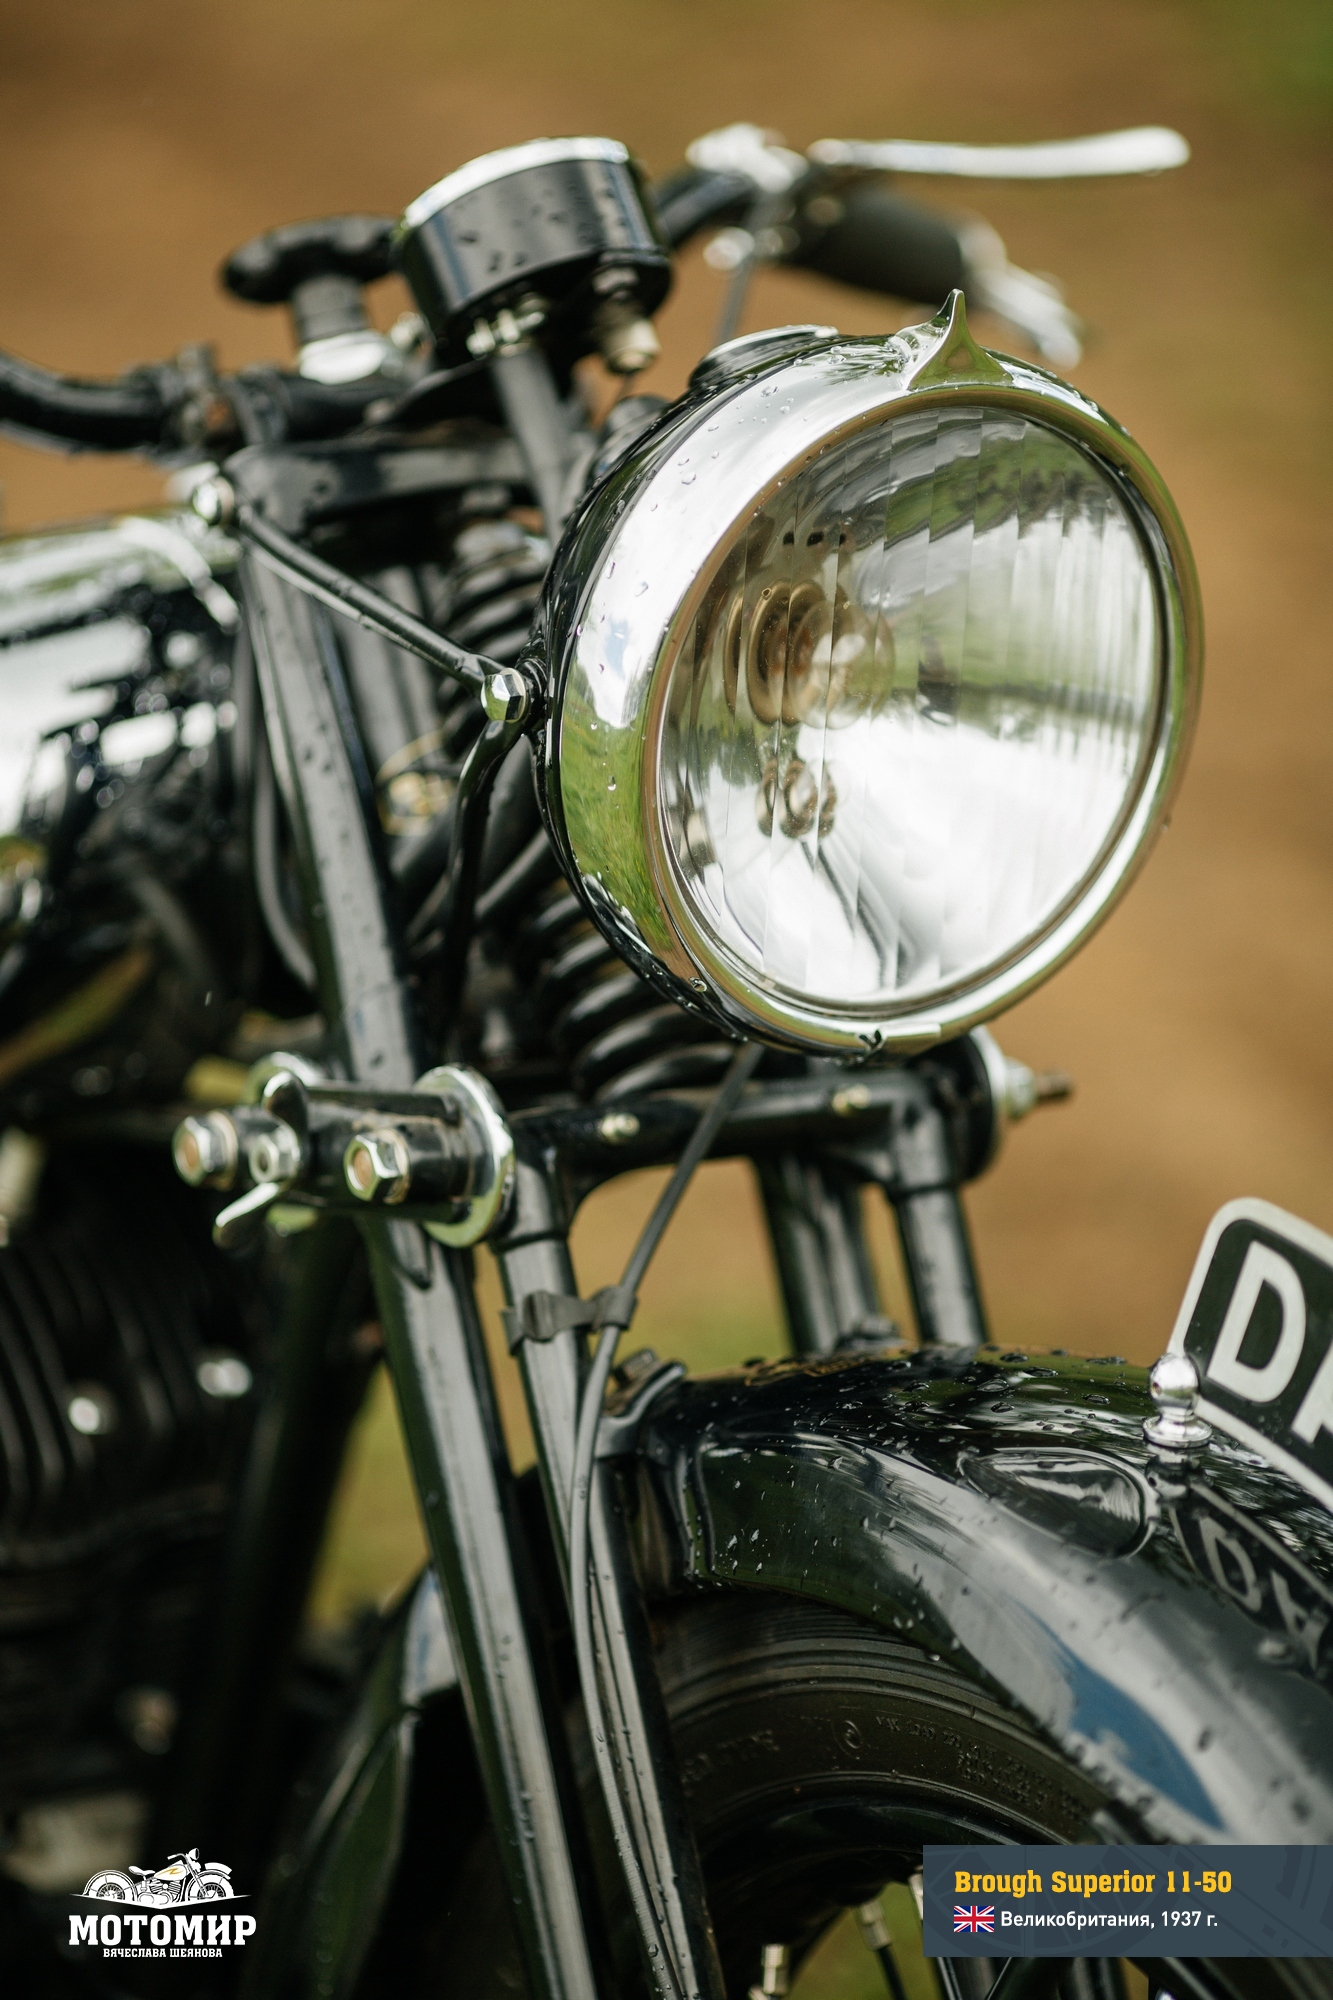 brough-superior-11-50-201509-web-20